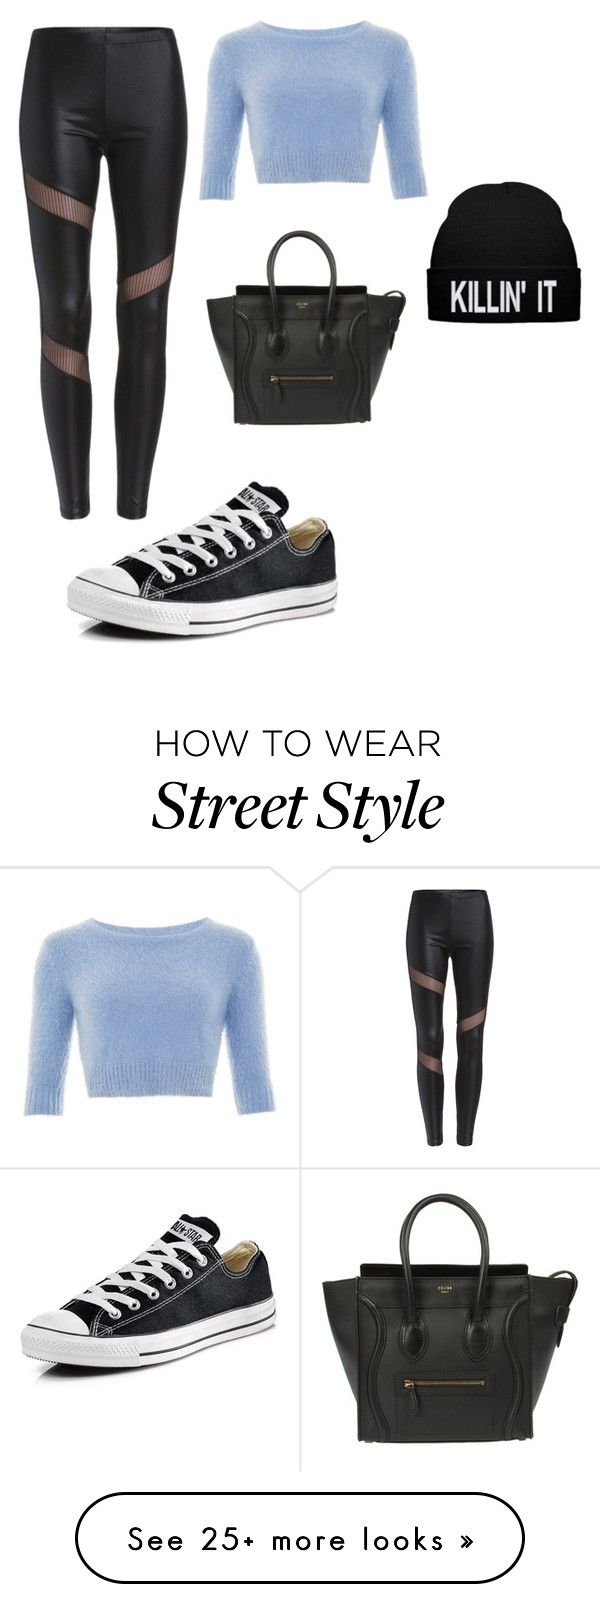 """streets style"" by werbungonline on Polyvore featuring Converse, CÉLINE, women's clothing, women's fashion, women, female, woman, misses and juniors"